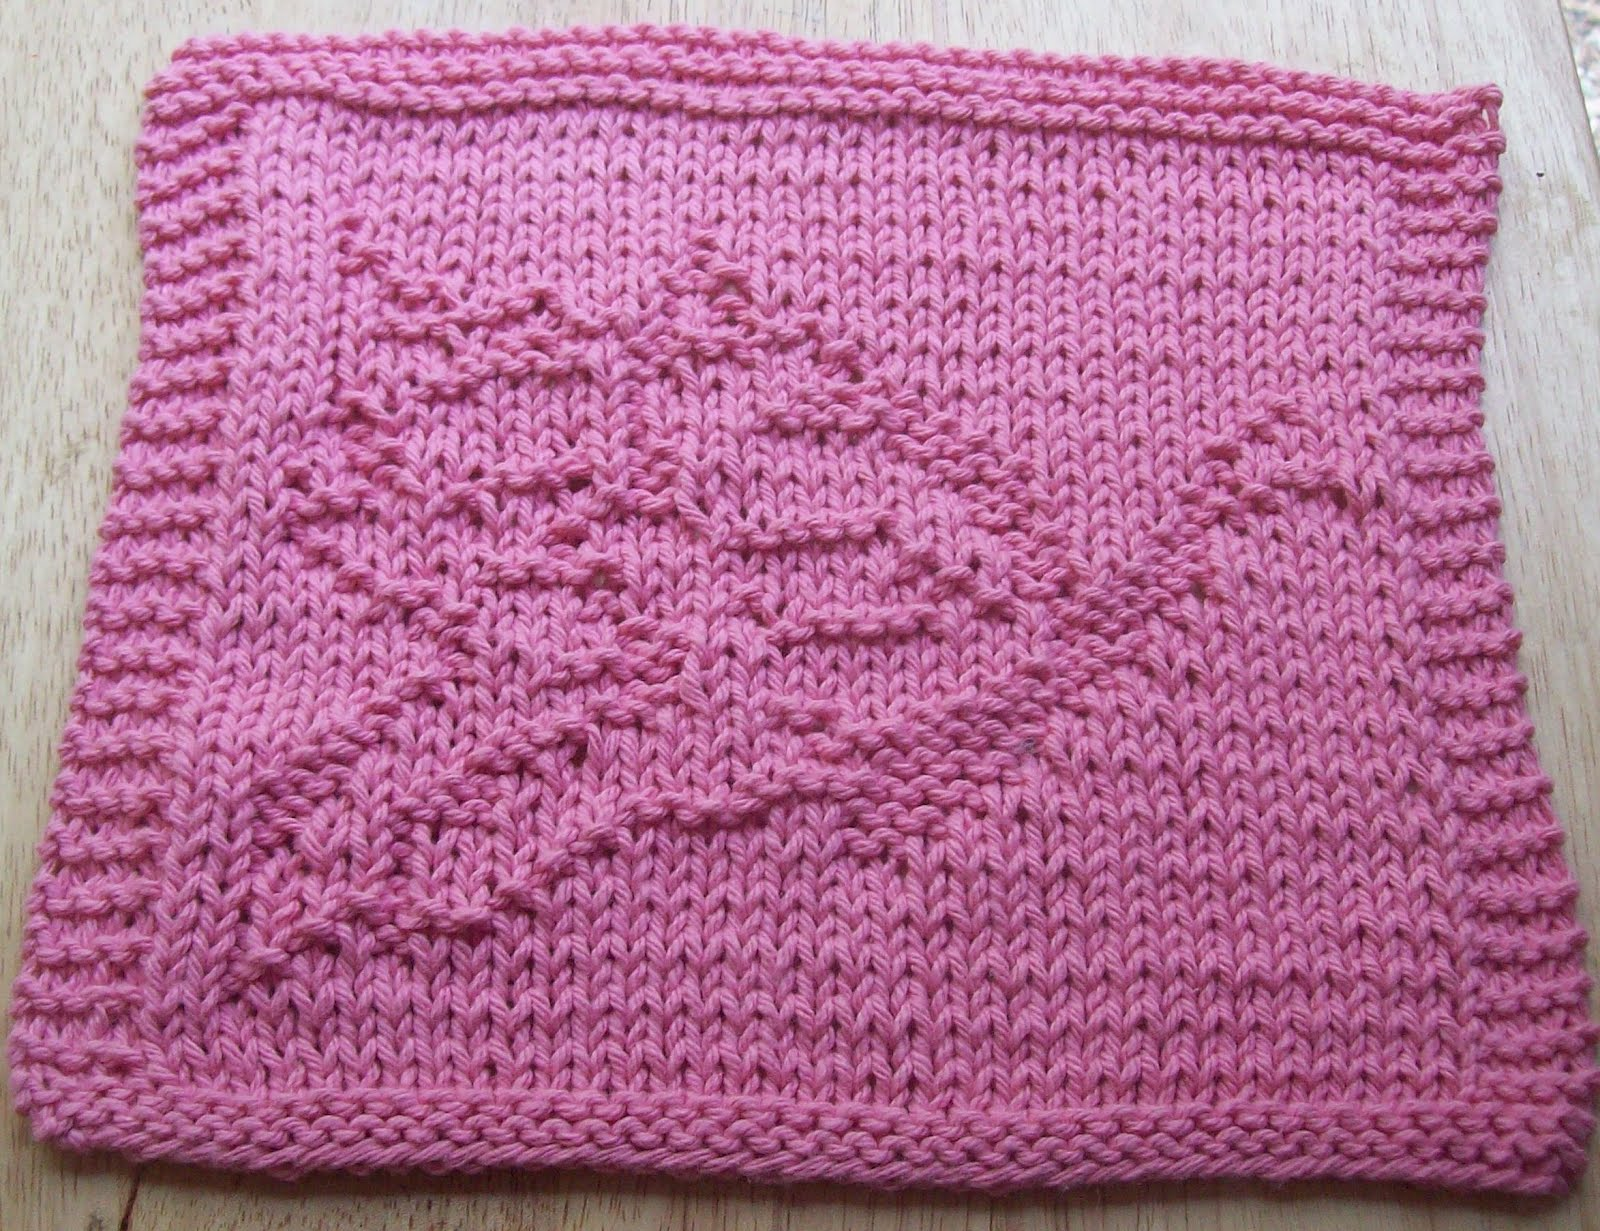 DigKnitty Designs: Another Butterfly Knit Dishcloth Pattern